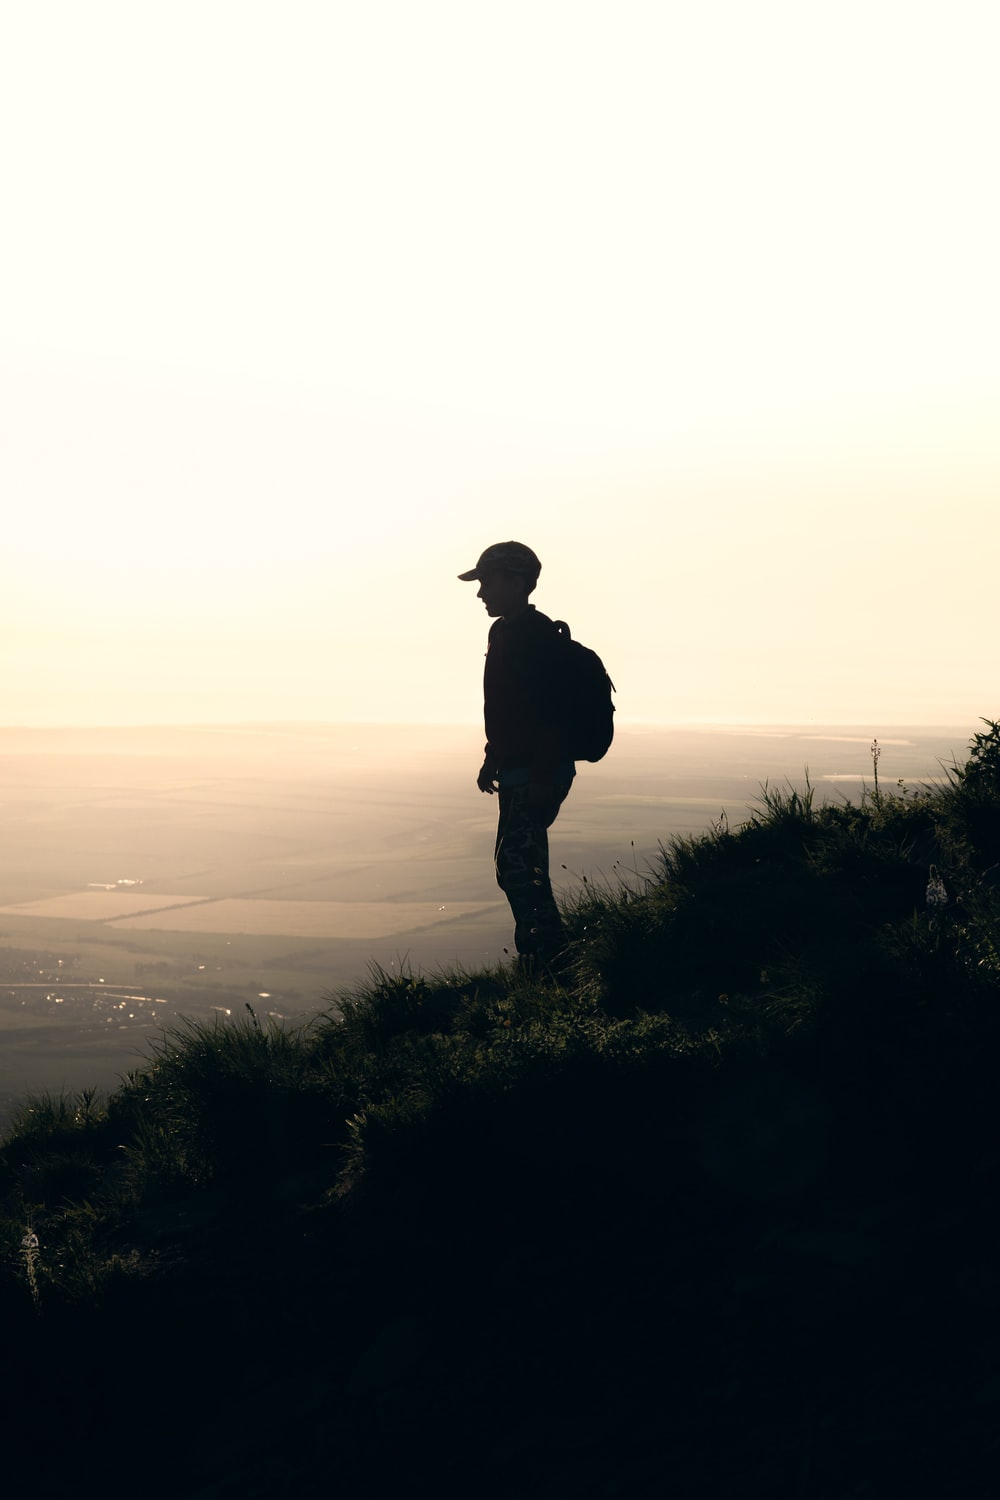 silhouette of man with backpack standing on slope of hill at dusk